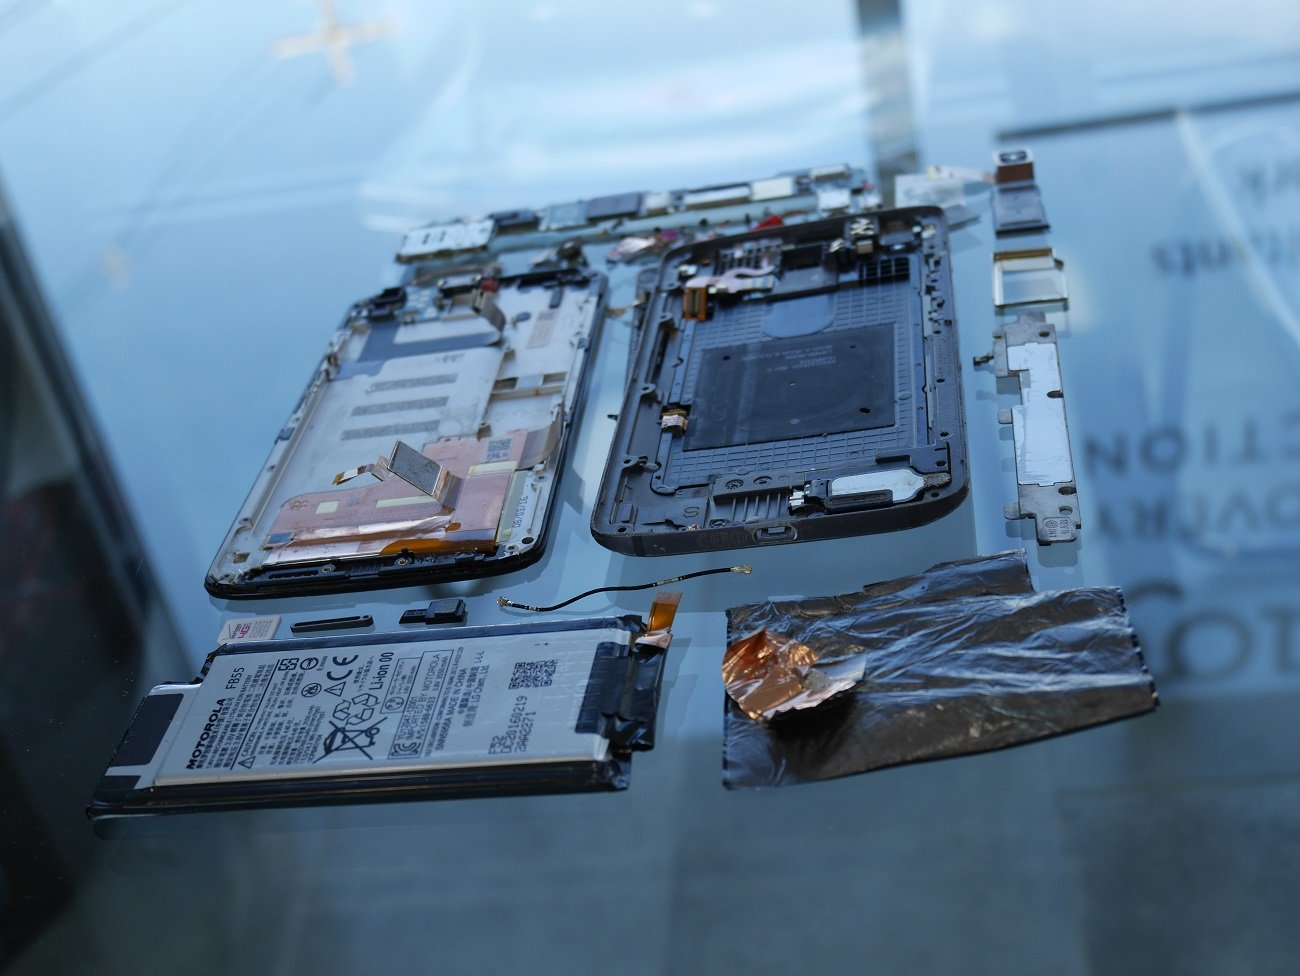 A Motorola Droid Turbo 2 phone taken apart for a mobile phone data recovery project.